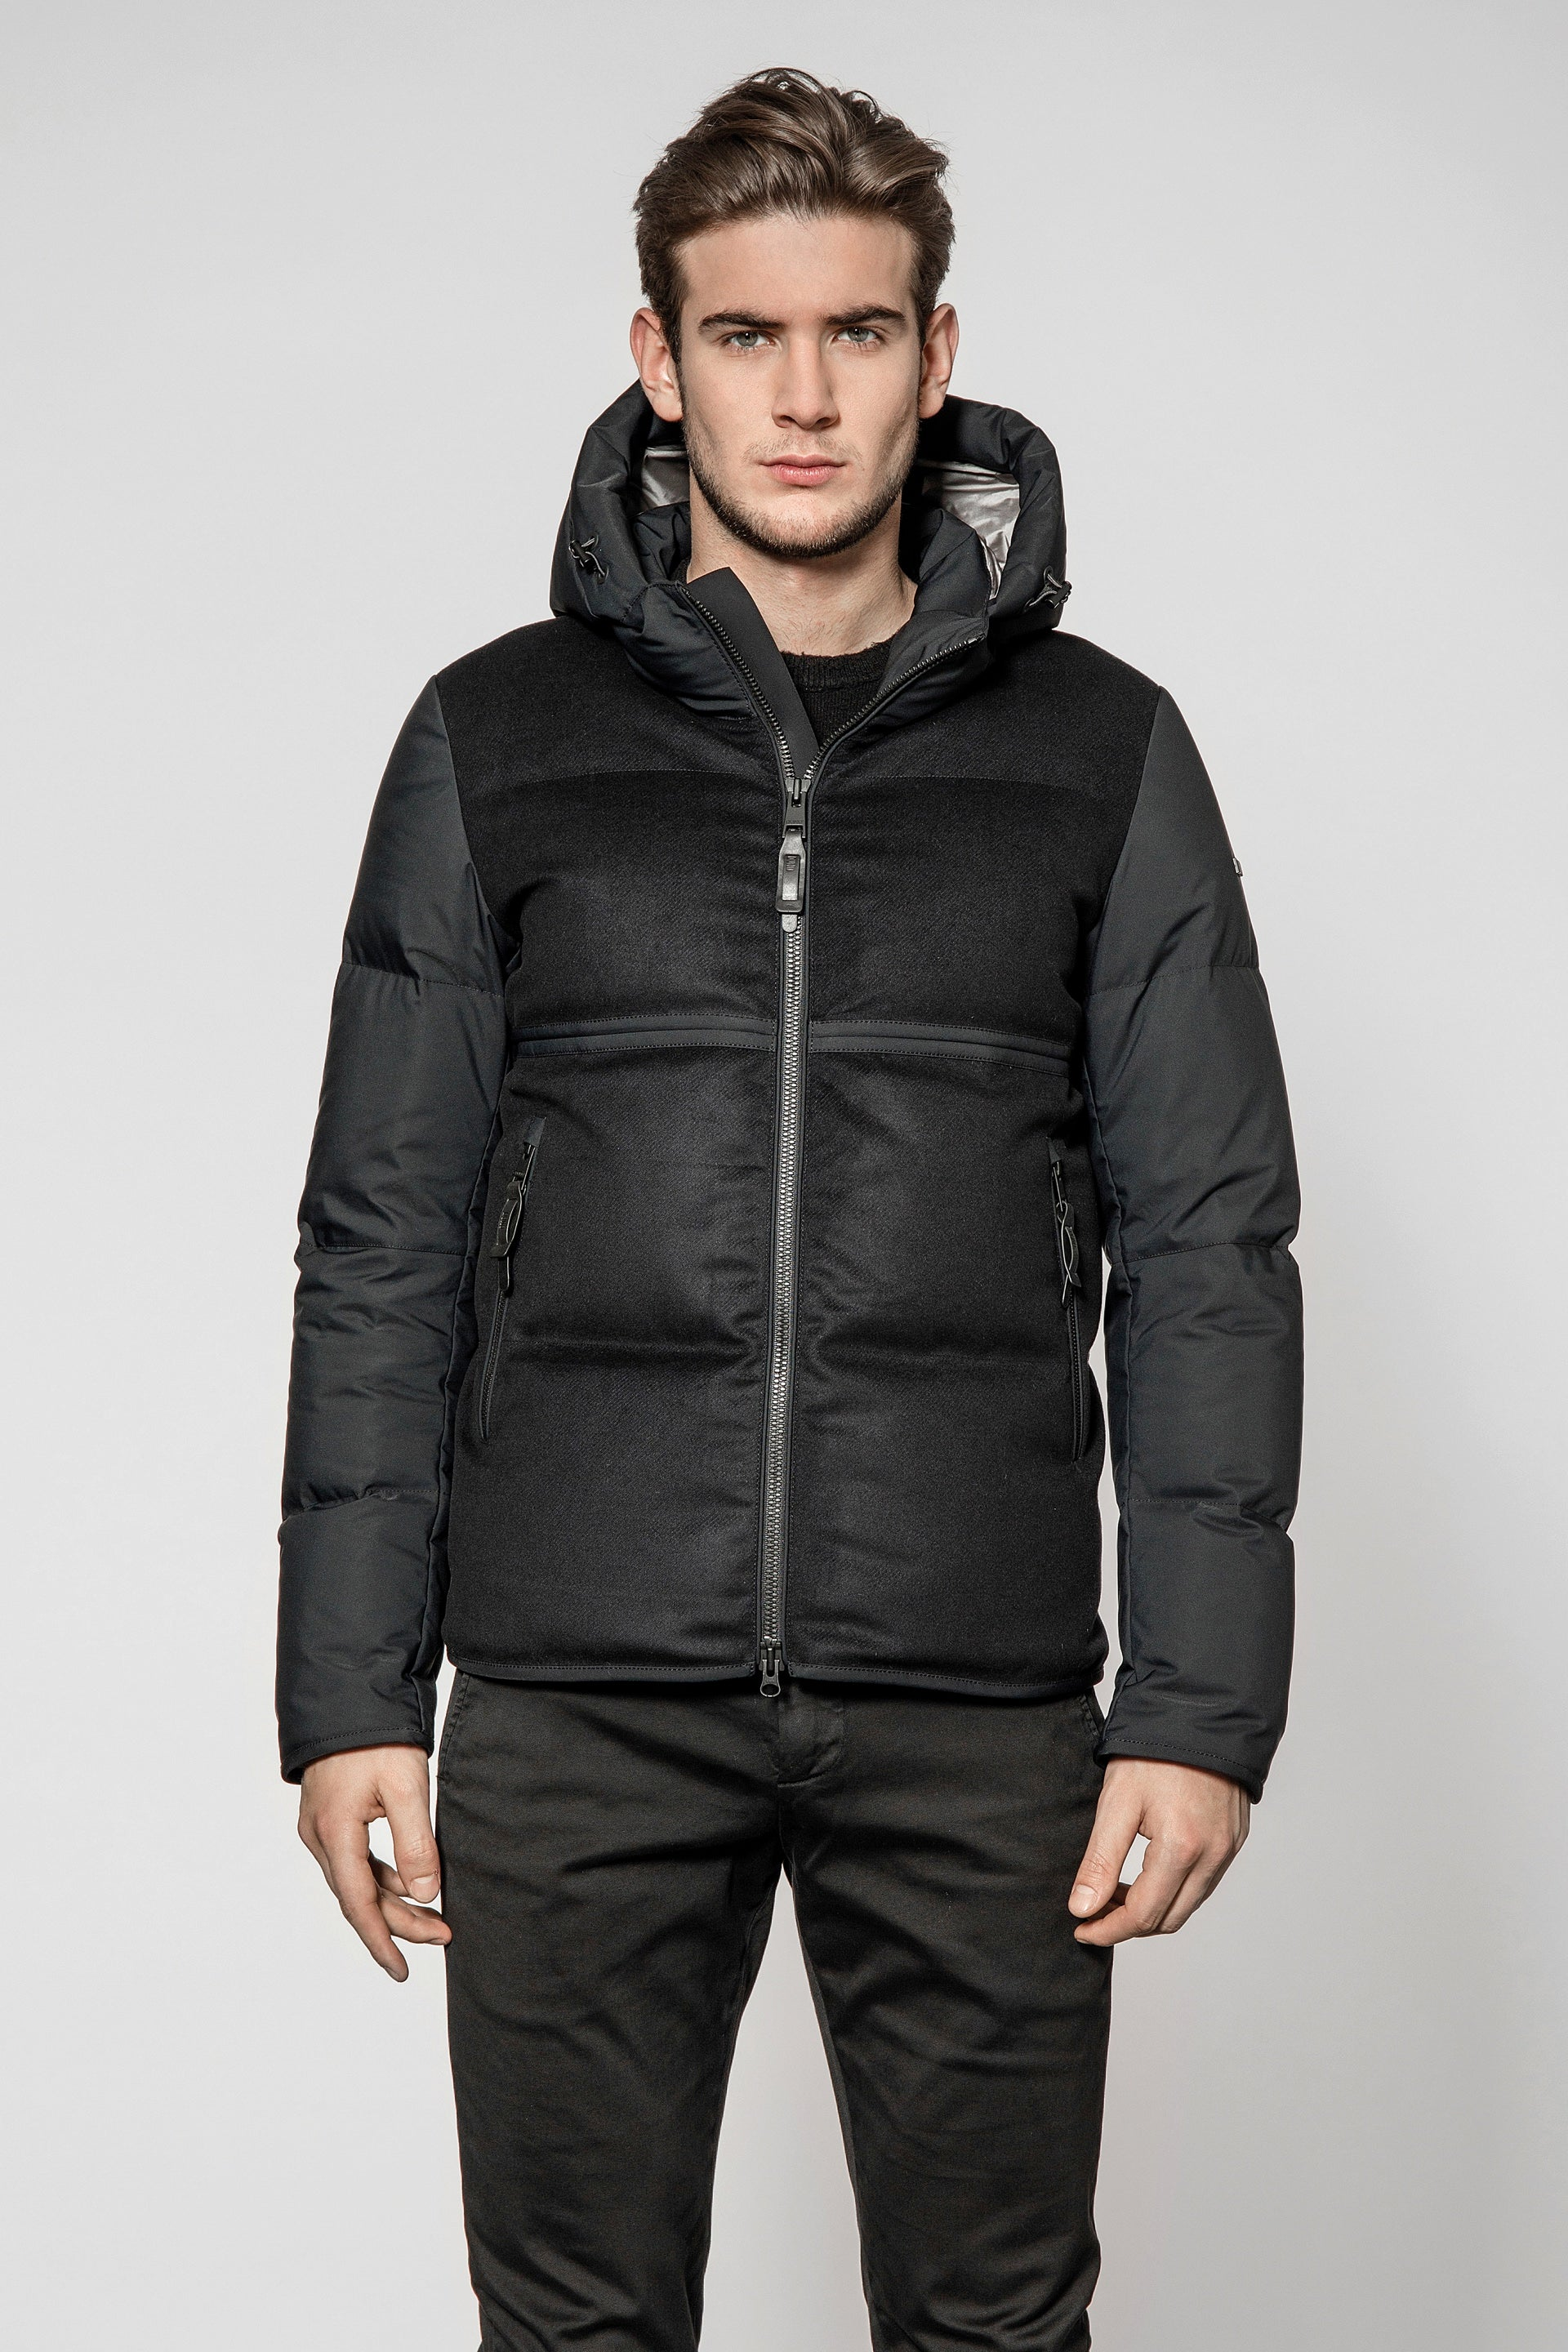 Duno Black Palm  Puffa Coat